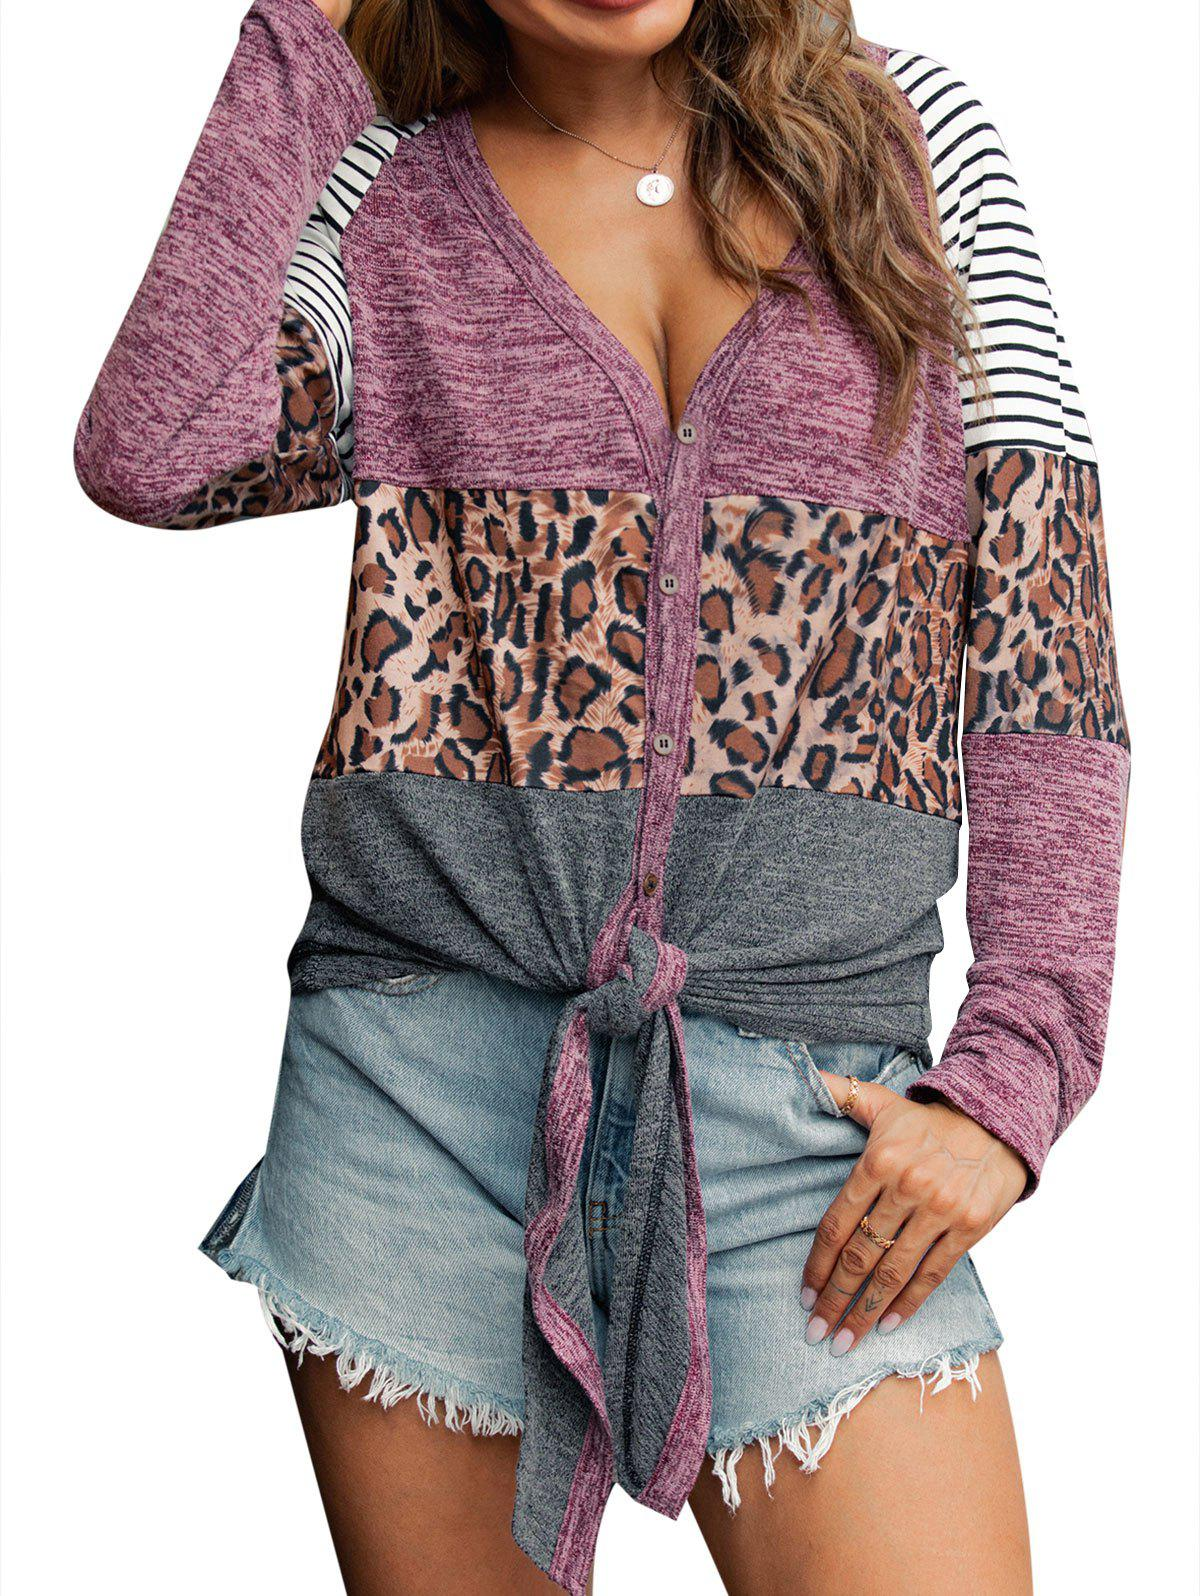 Striped Leopard Heathered Self-tie Knitwear - LIGHT PINK XL